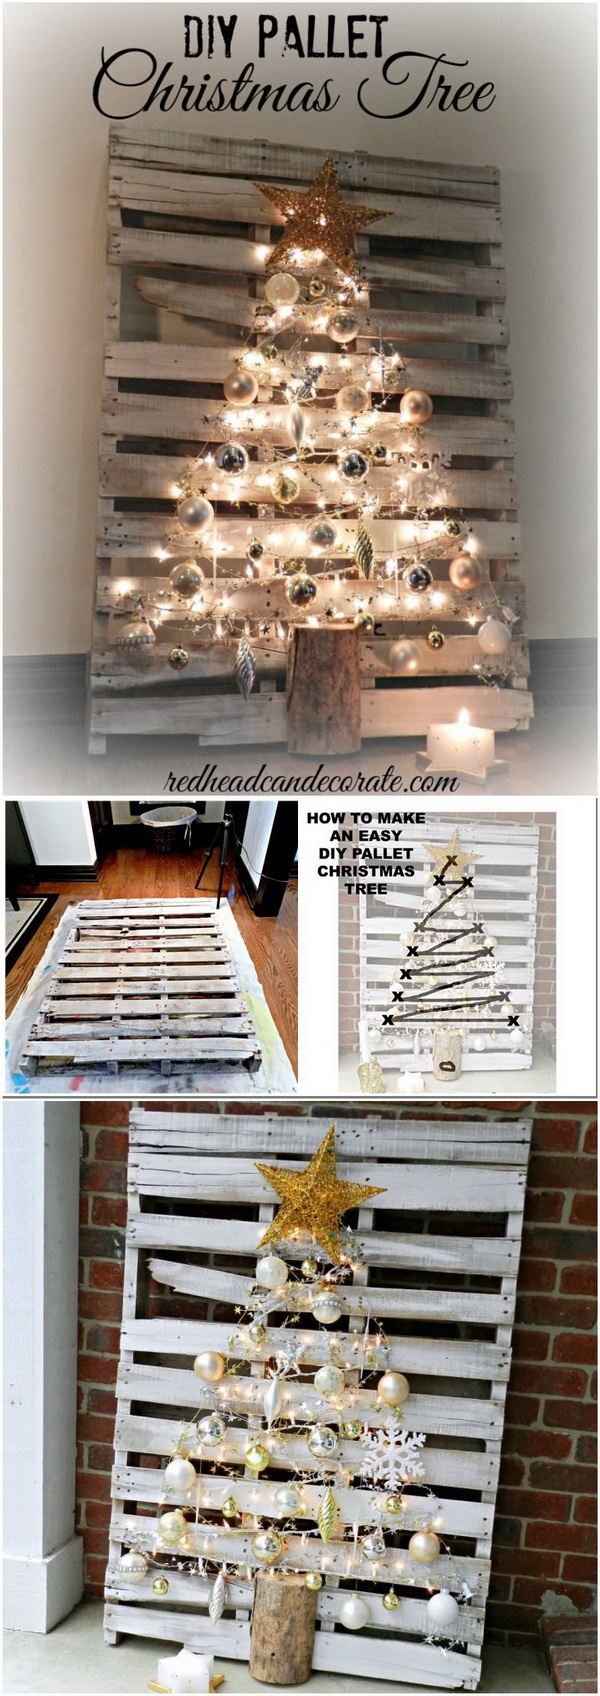 Pallet Lighting Christmas Tree. Make a Christmas tree from reclaimed pallets and decorate with Christmas ornaments and fairy lights. It gives a touch of warmth to your Christmas decoration.